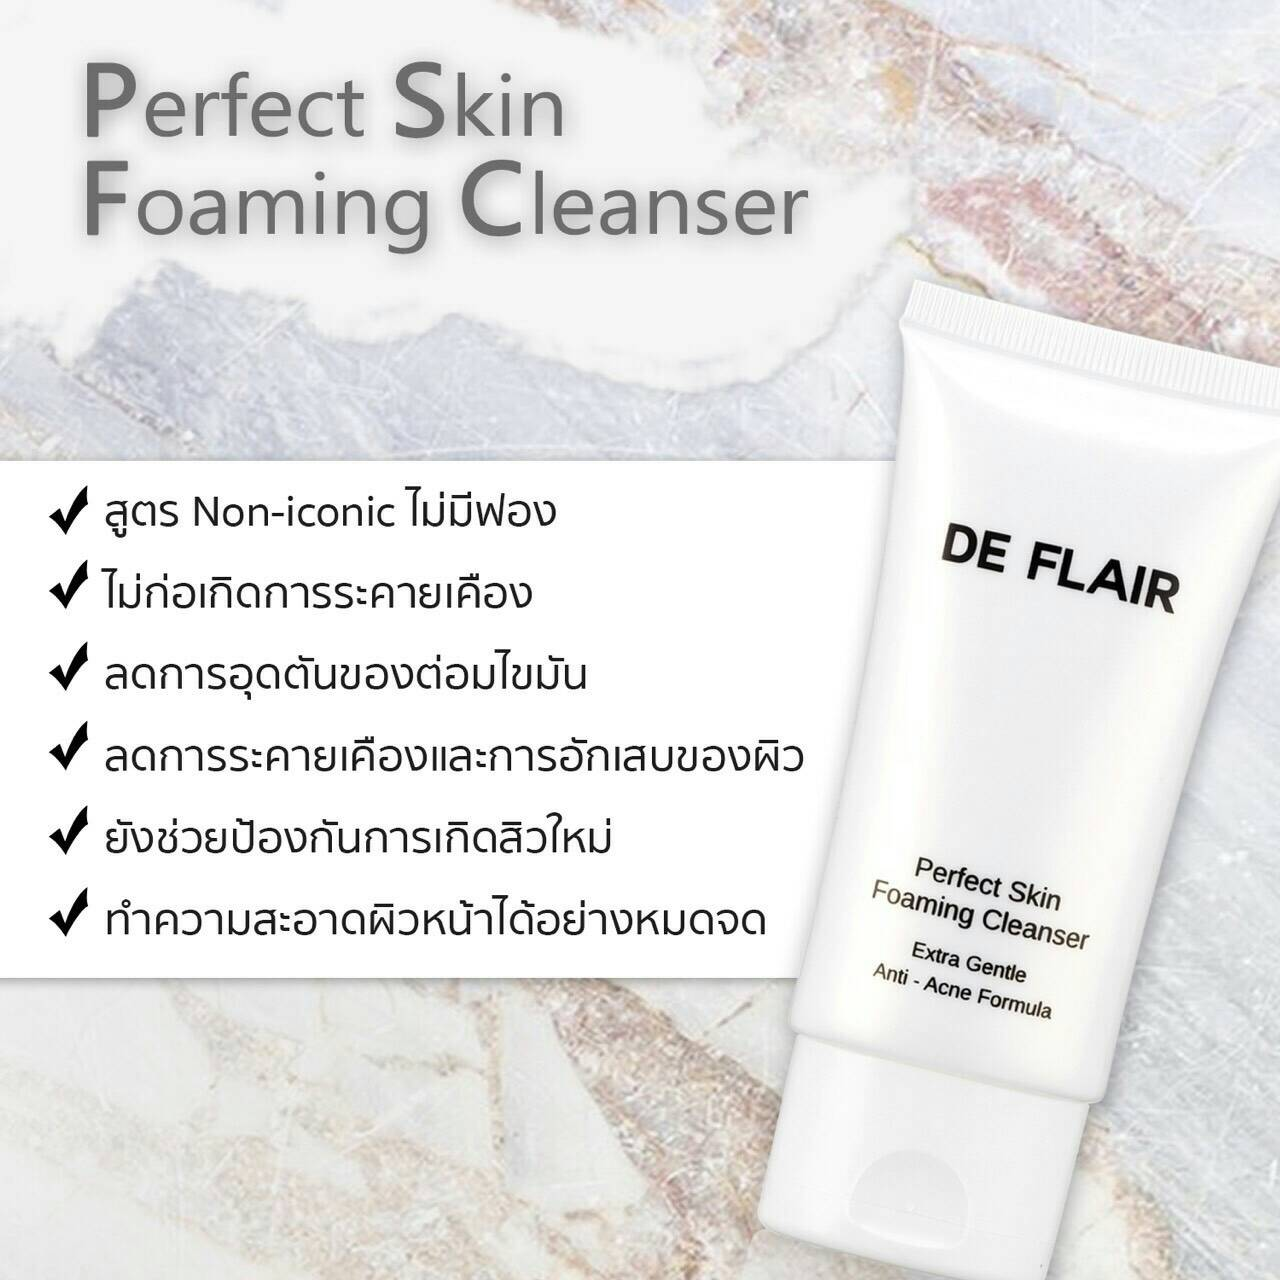 De Flair Perfect Skin Foaming Cleanser Extra Gentle Anti-Acne Formula โฟมล้างหน้าสูตรNon-iconic